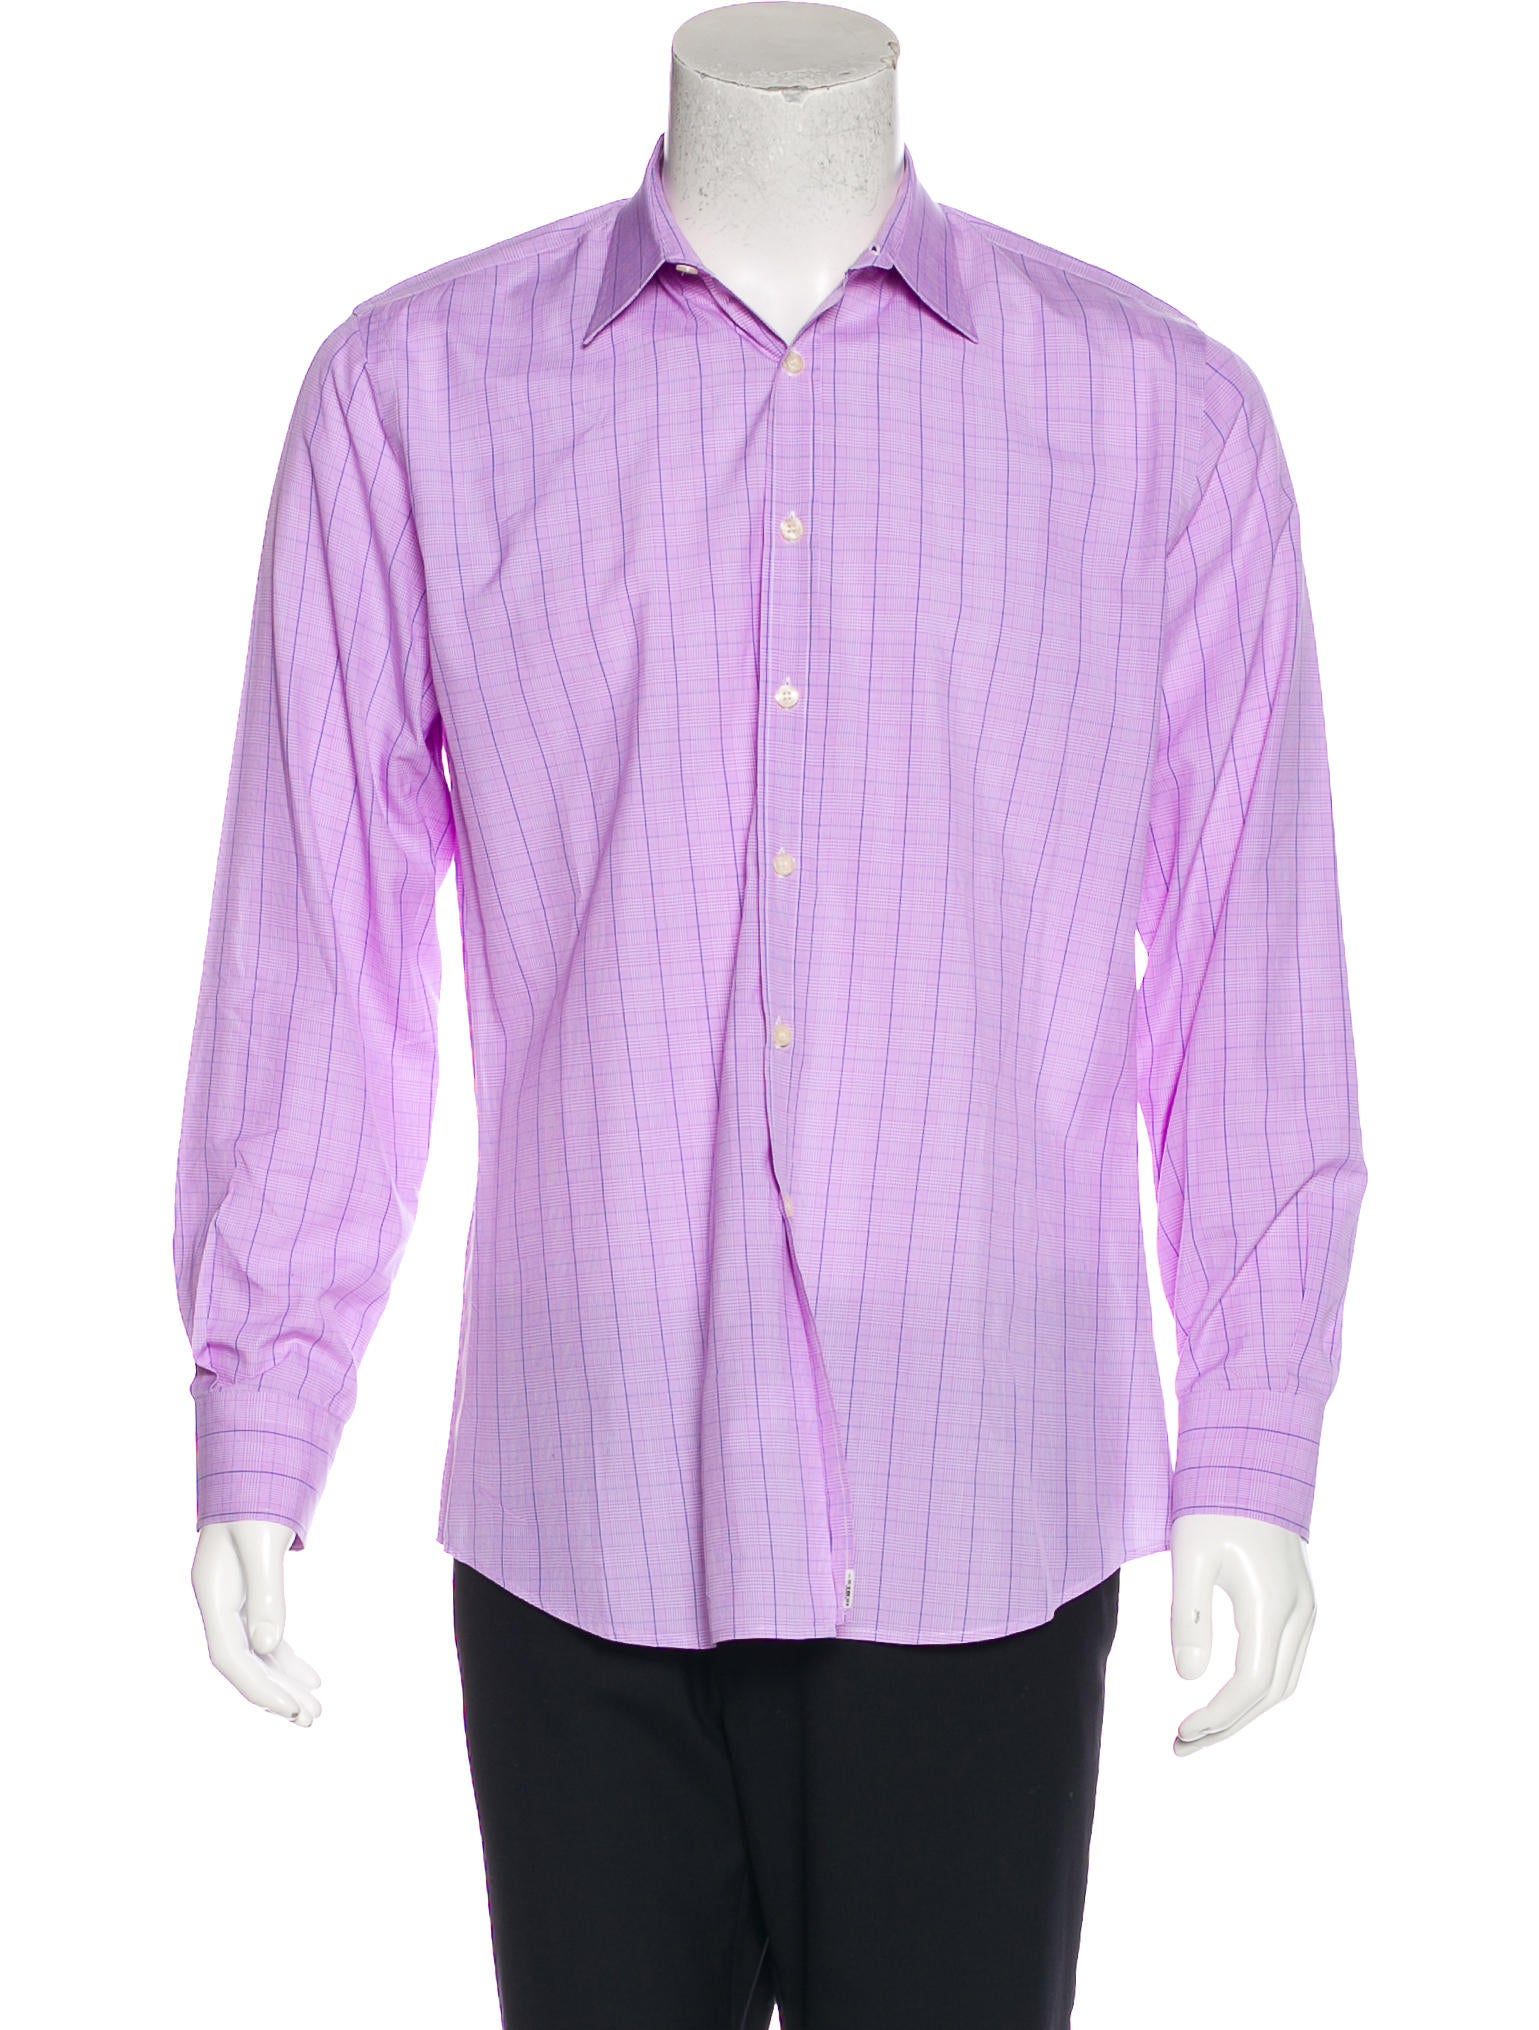 Paul smith tailored fit plaid shirt clothing wps24509 for Tailored fit dress shirts